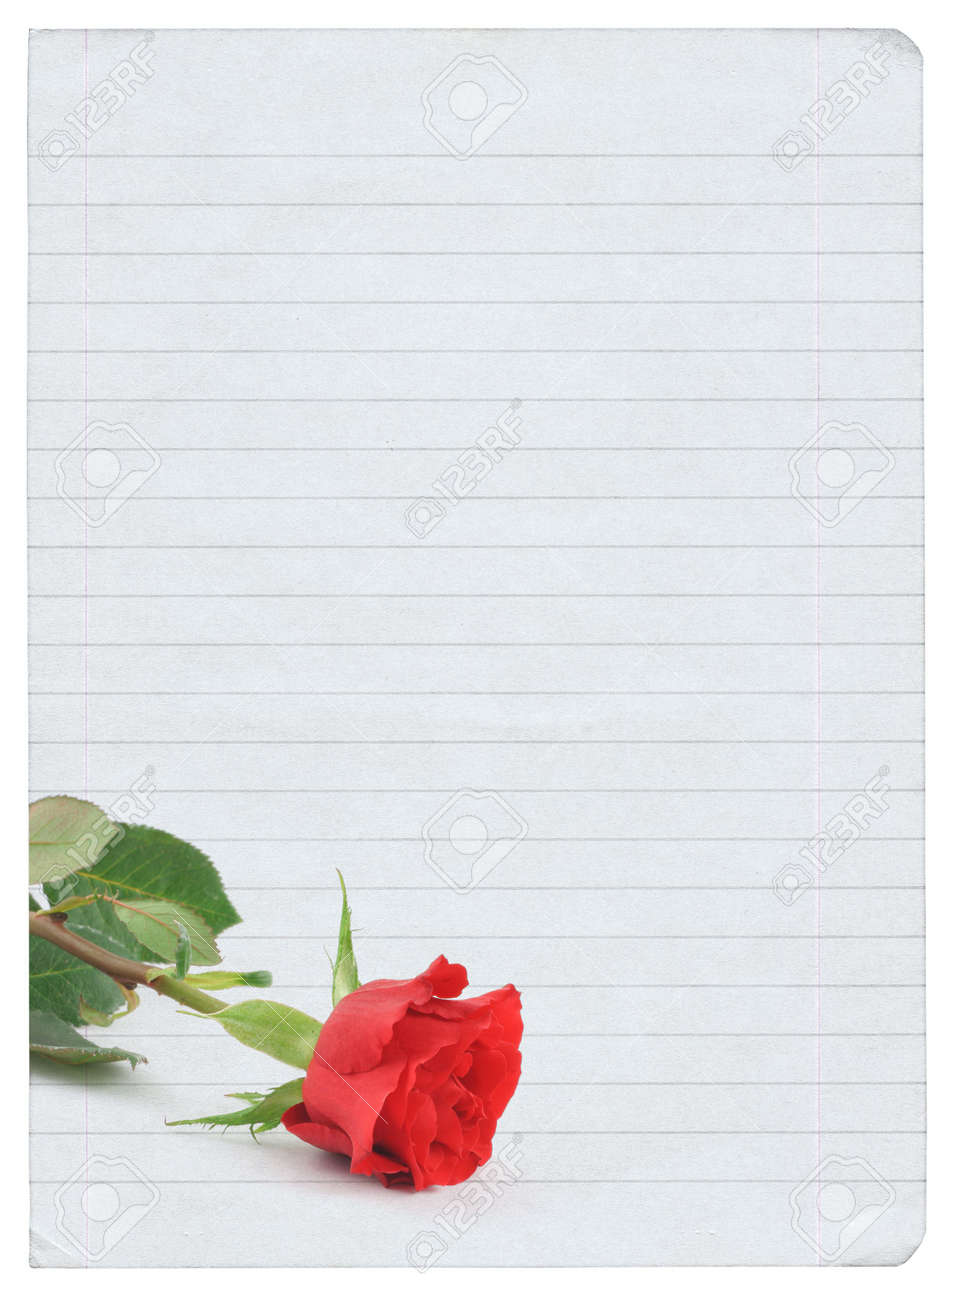 Blank Love Letter Isolated On Pure White Background, Photo Inside